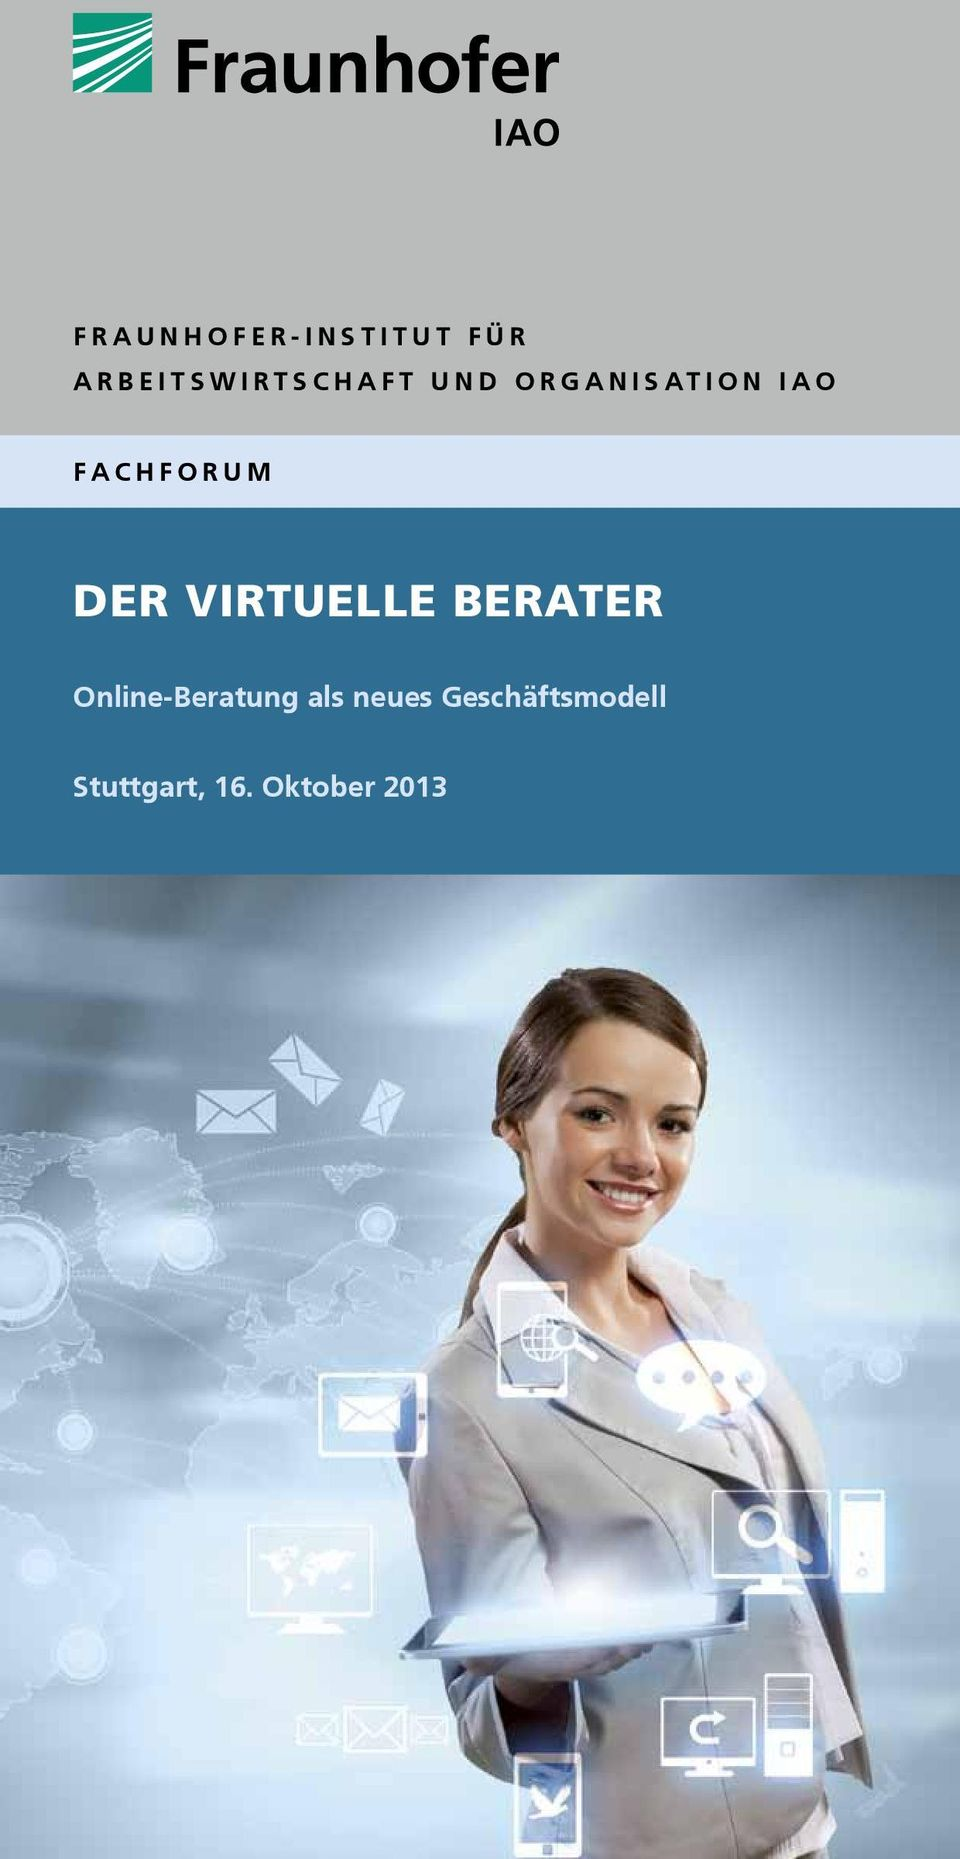 Fachforum Der virtuelle Berater